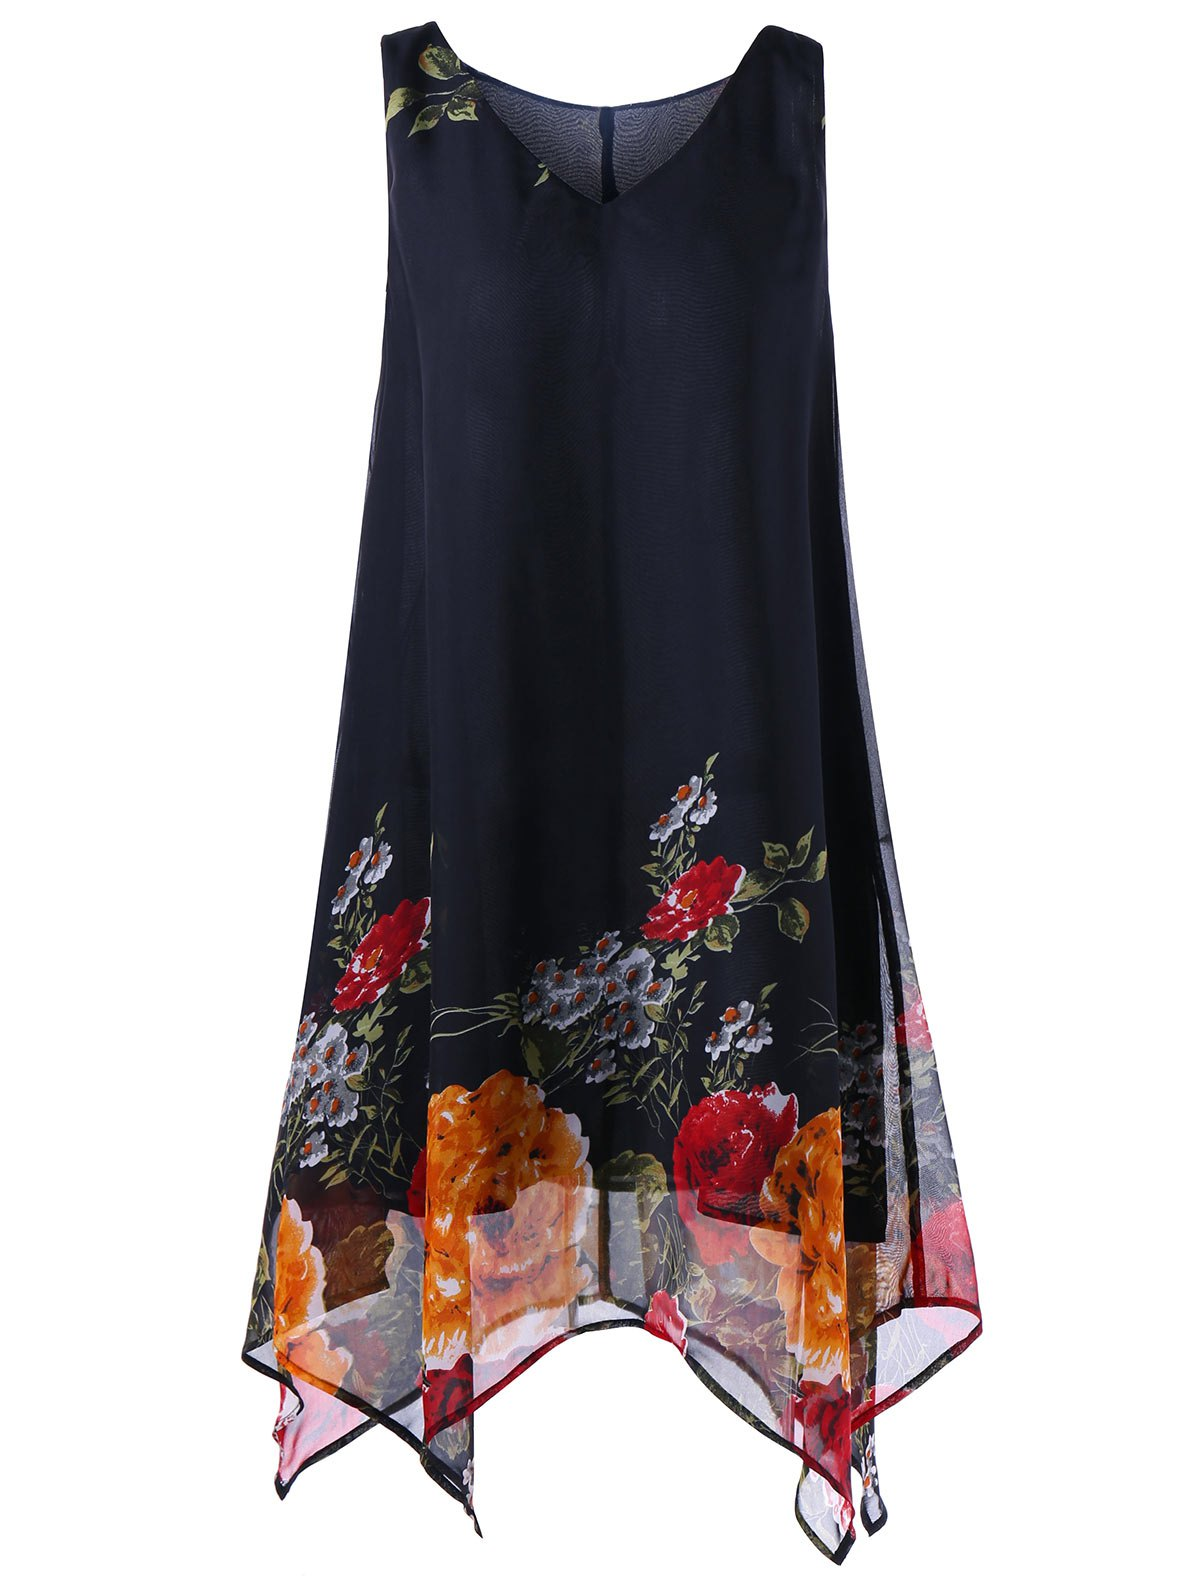 Plus Size V Neck Floral Handkerchief Dress tiny floral chiffon plus size slip handkerchief dress